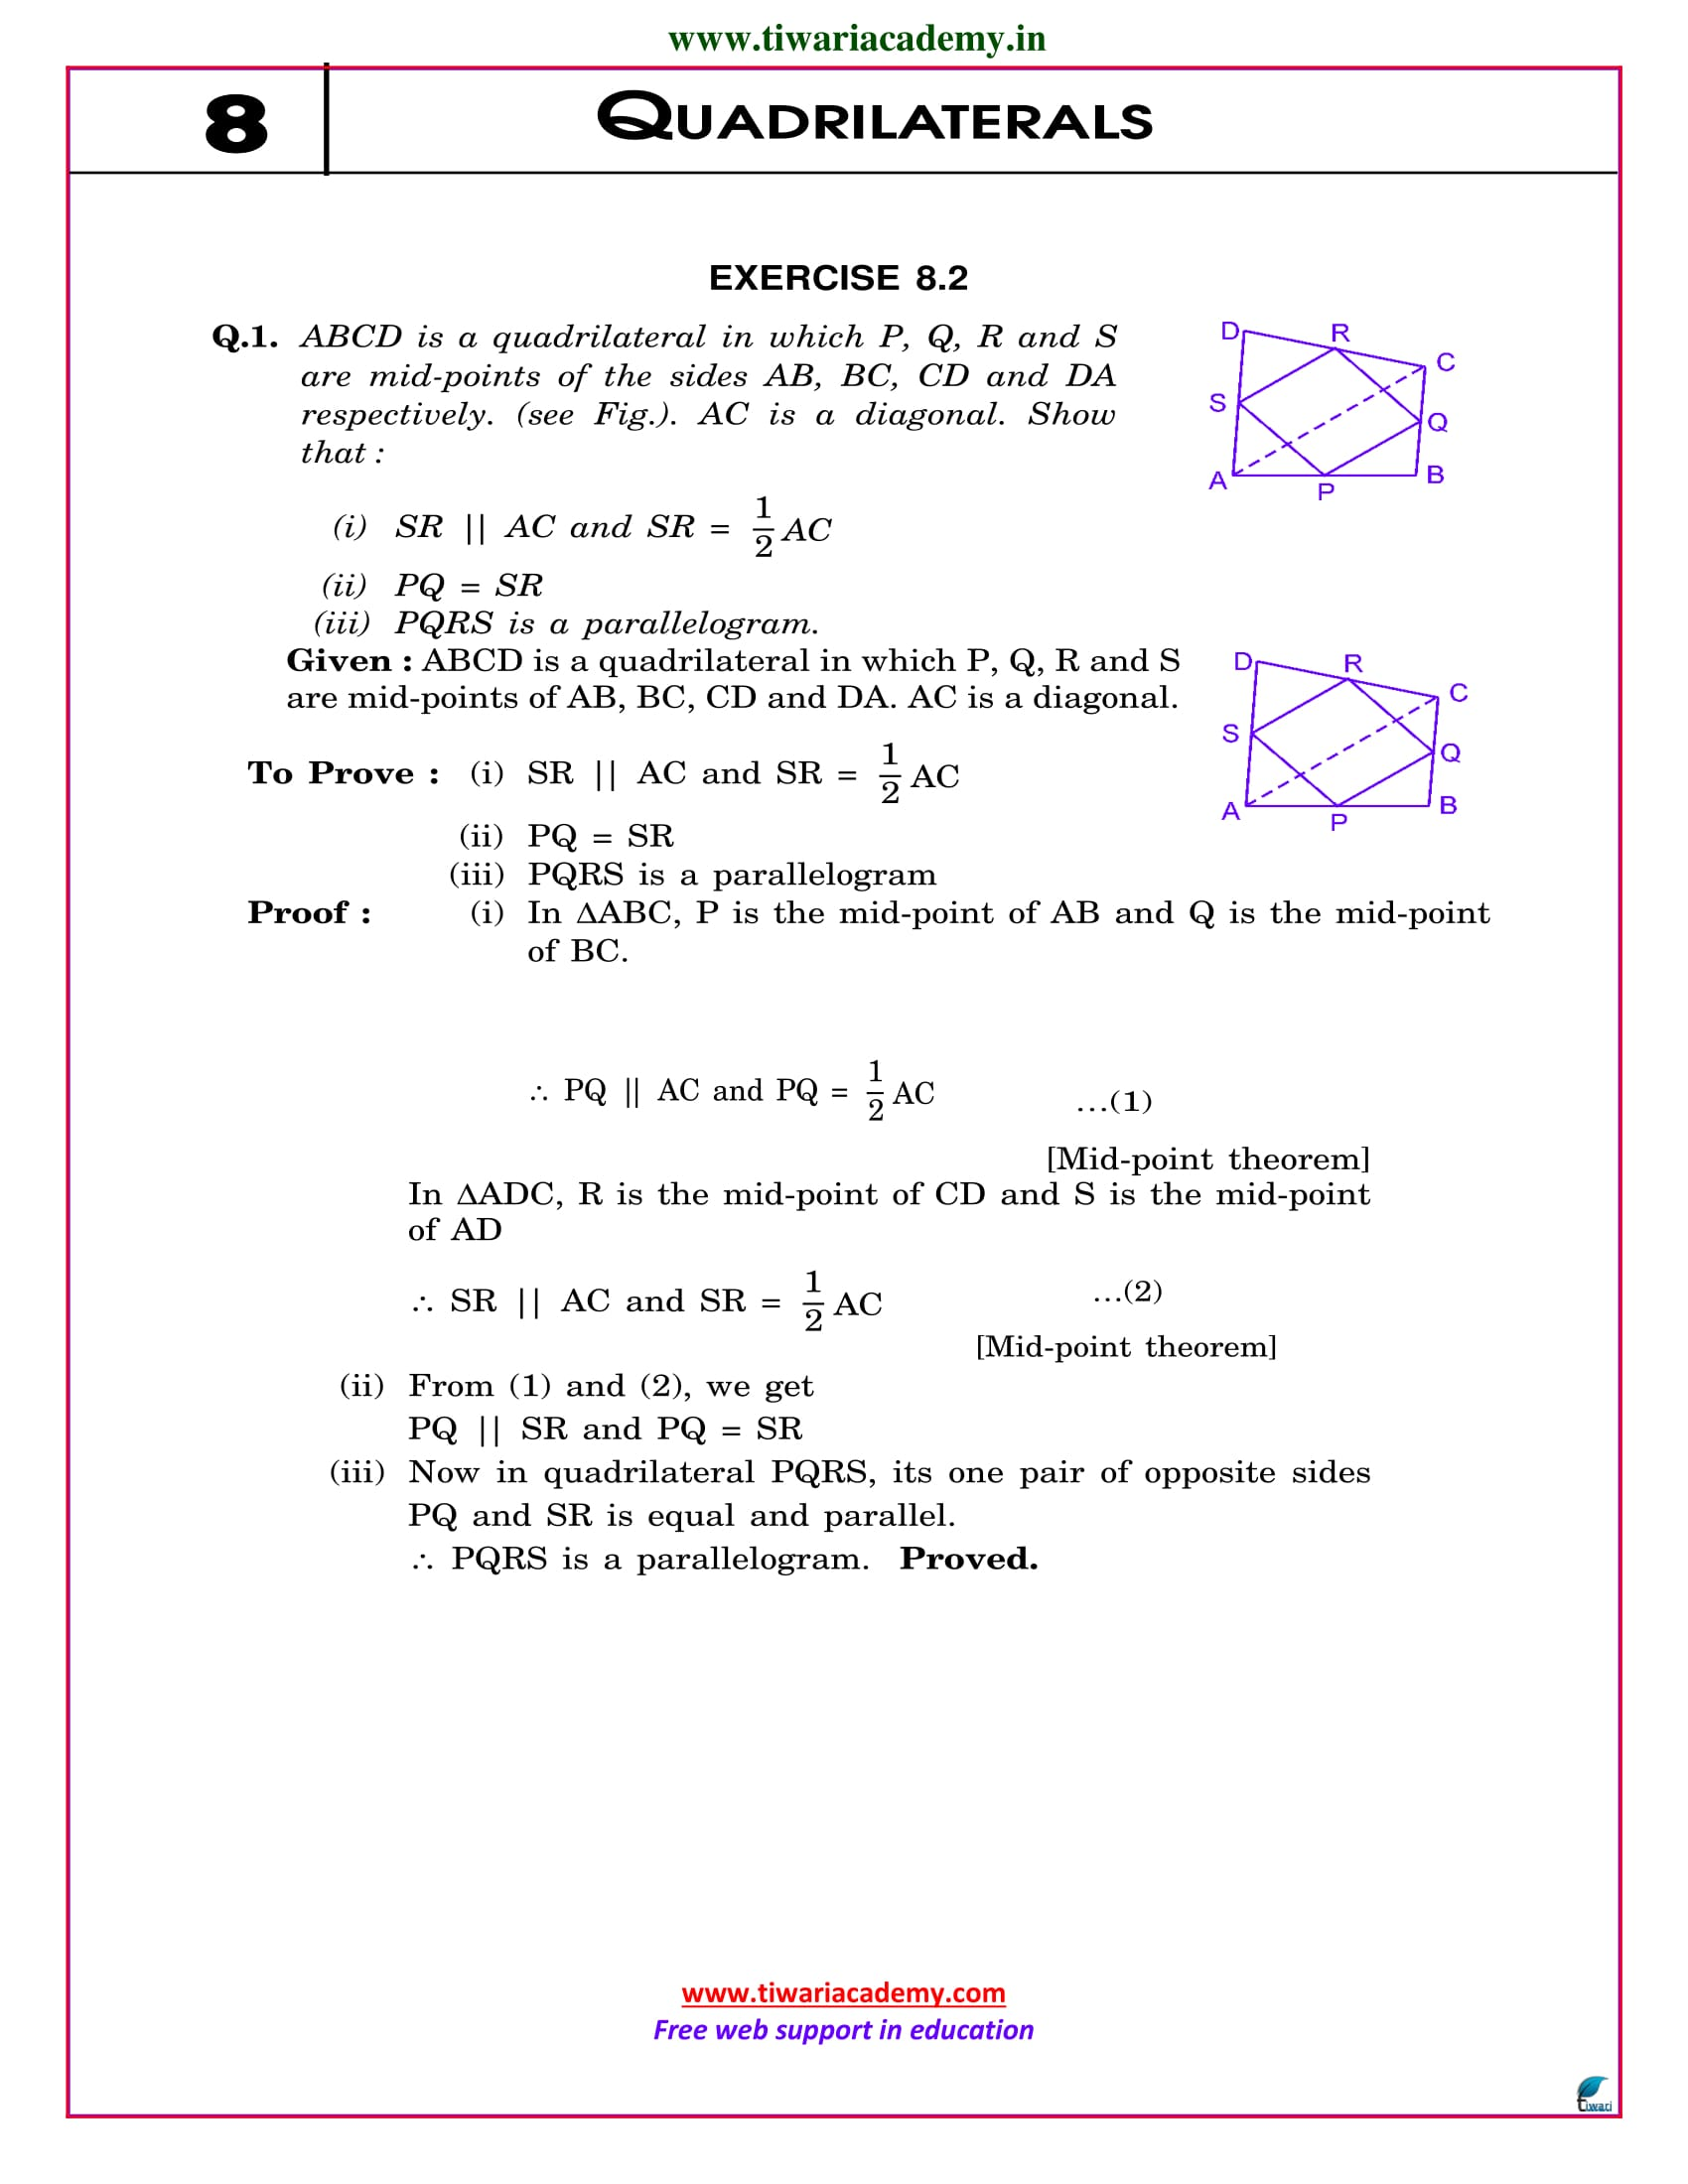 NCERT Solutions for Class 9 Maths Chapter 8 Exercise 8.2